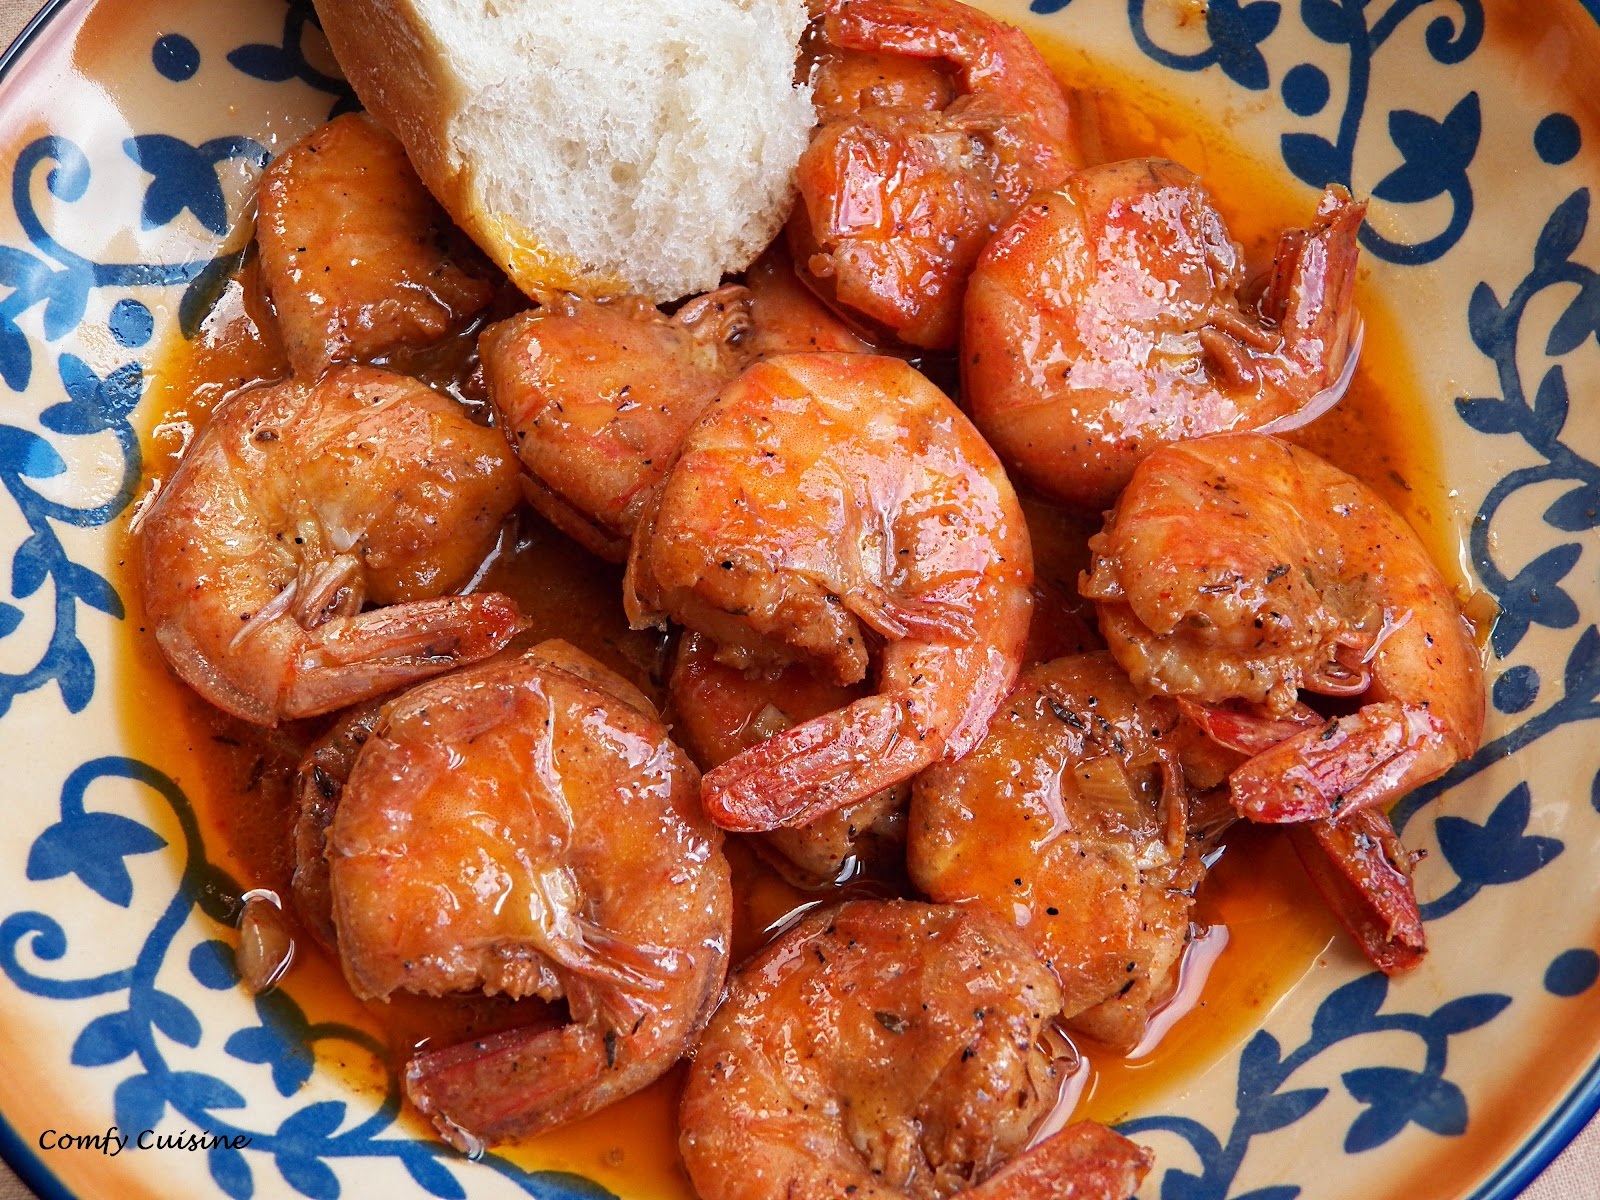 Comfy Cuisine: New Orleans-Style Garlic BBQ Shrimp